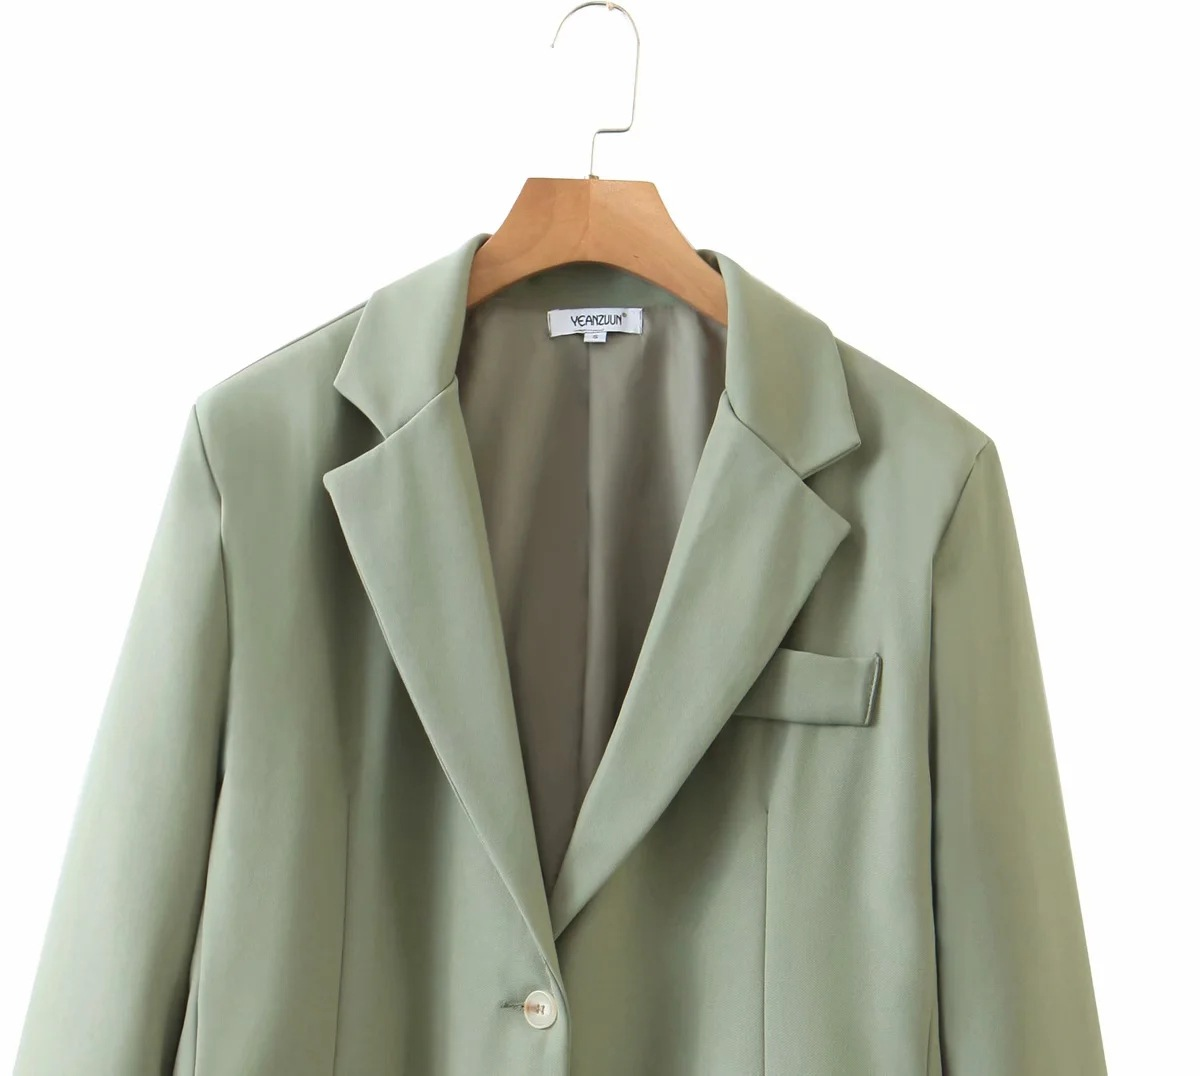 2020 new women's suit solid color jacket Autumn casual single-breasted long-sleeved office blazer Fashion all-match coat